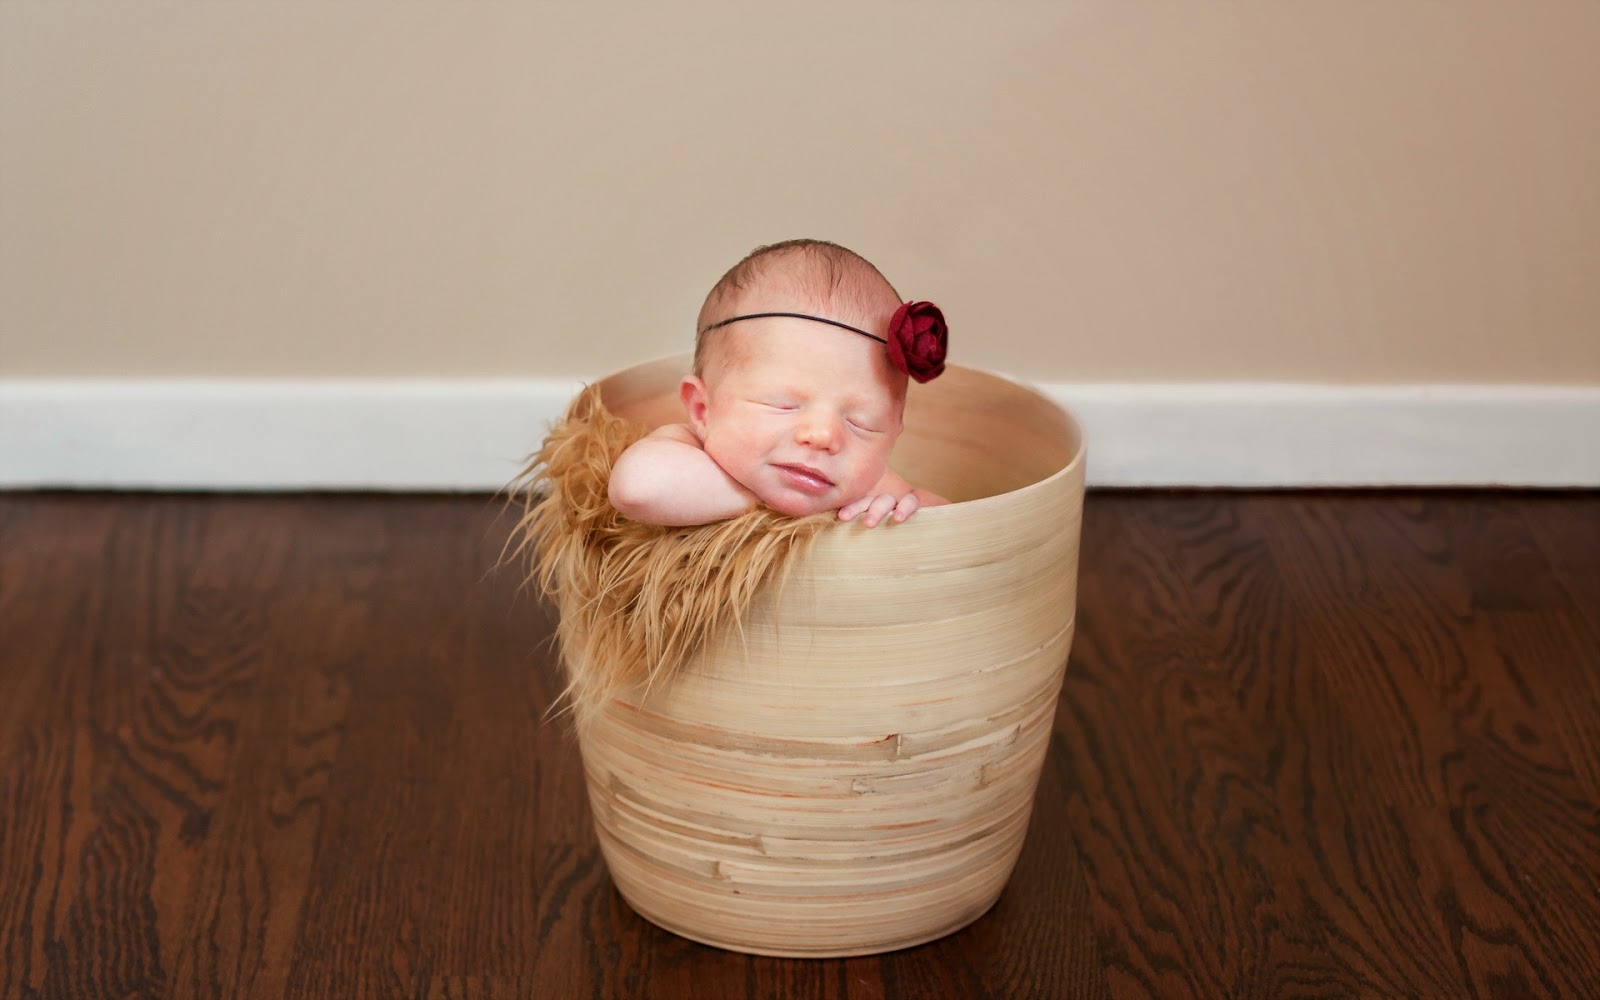 Baby-sleeping-wallpaper-images-for-desktop-pc-and-mobile.jpg